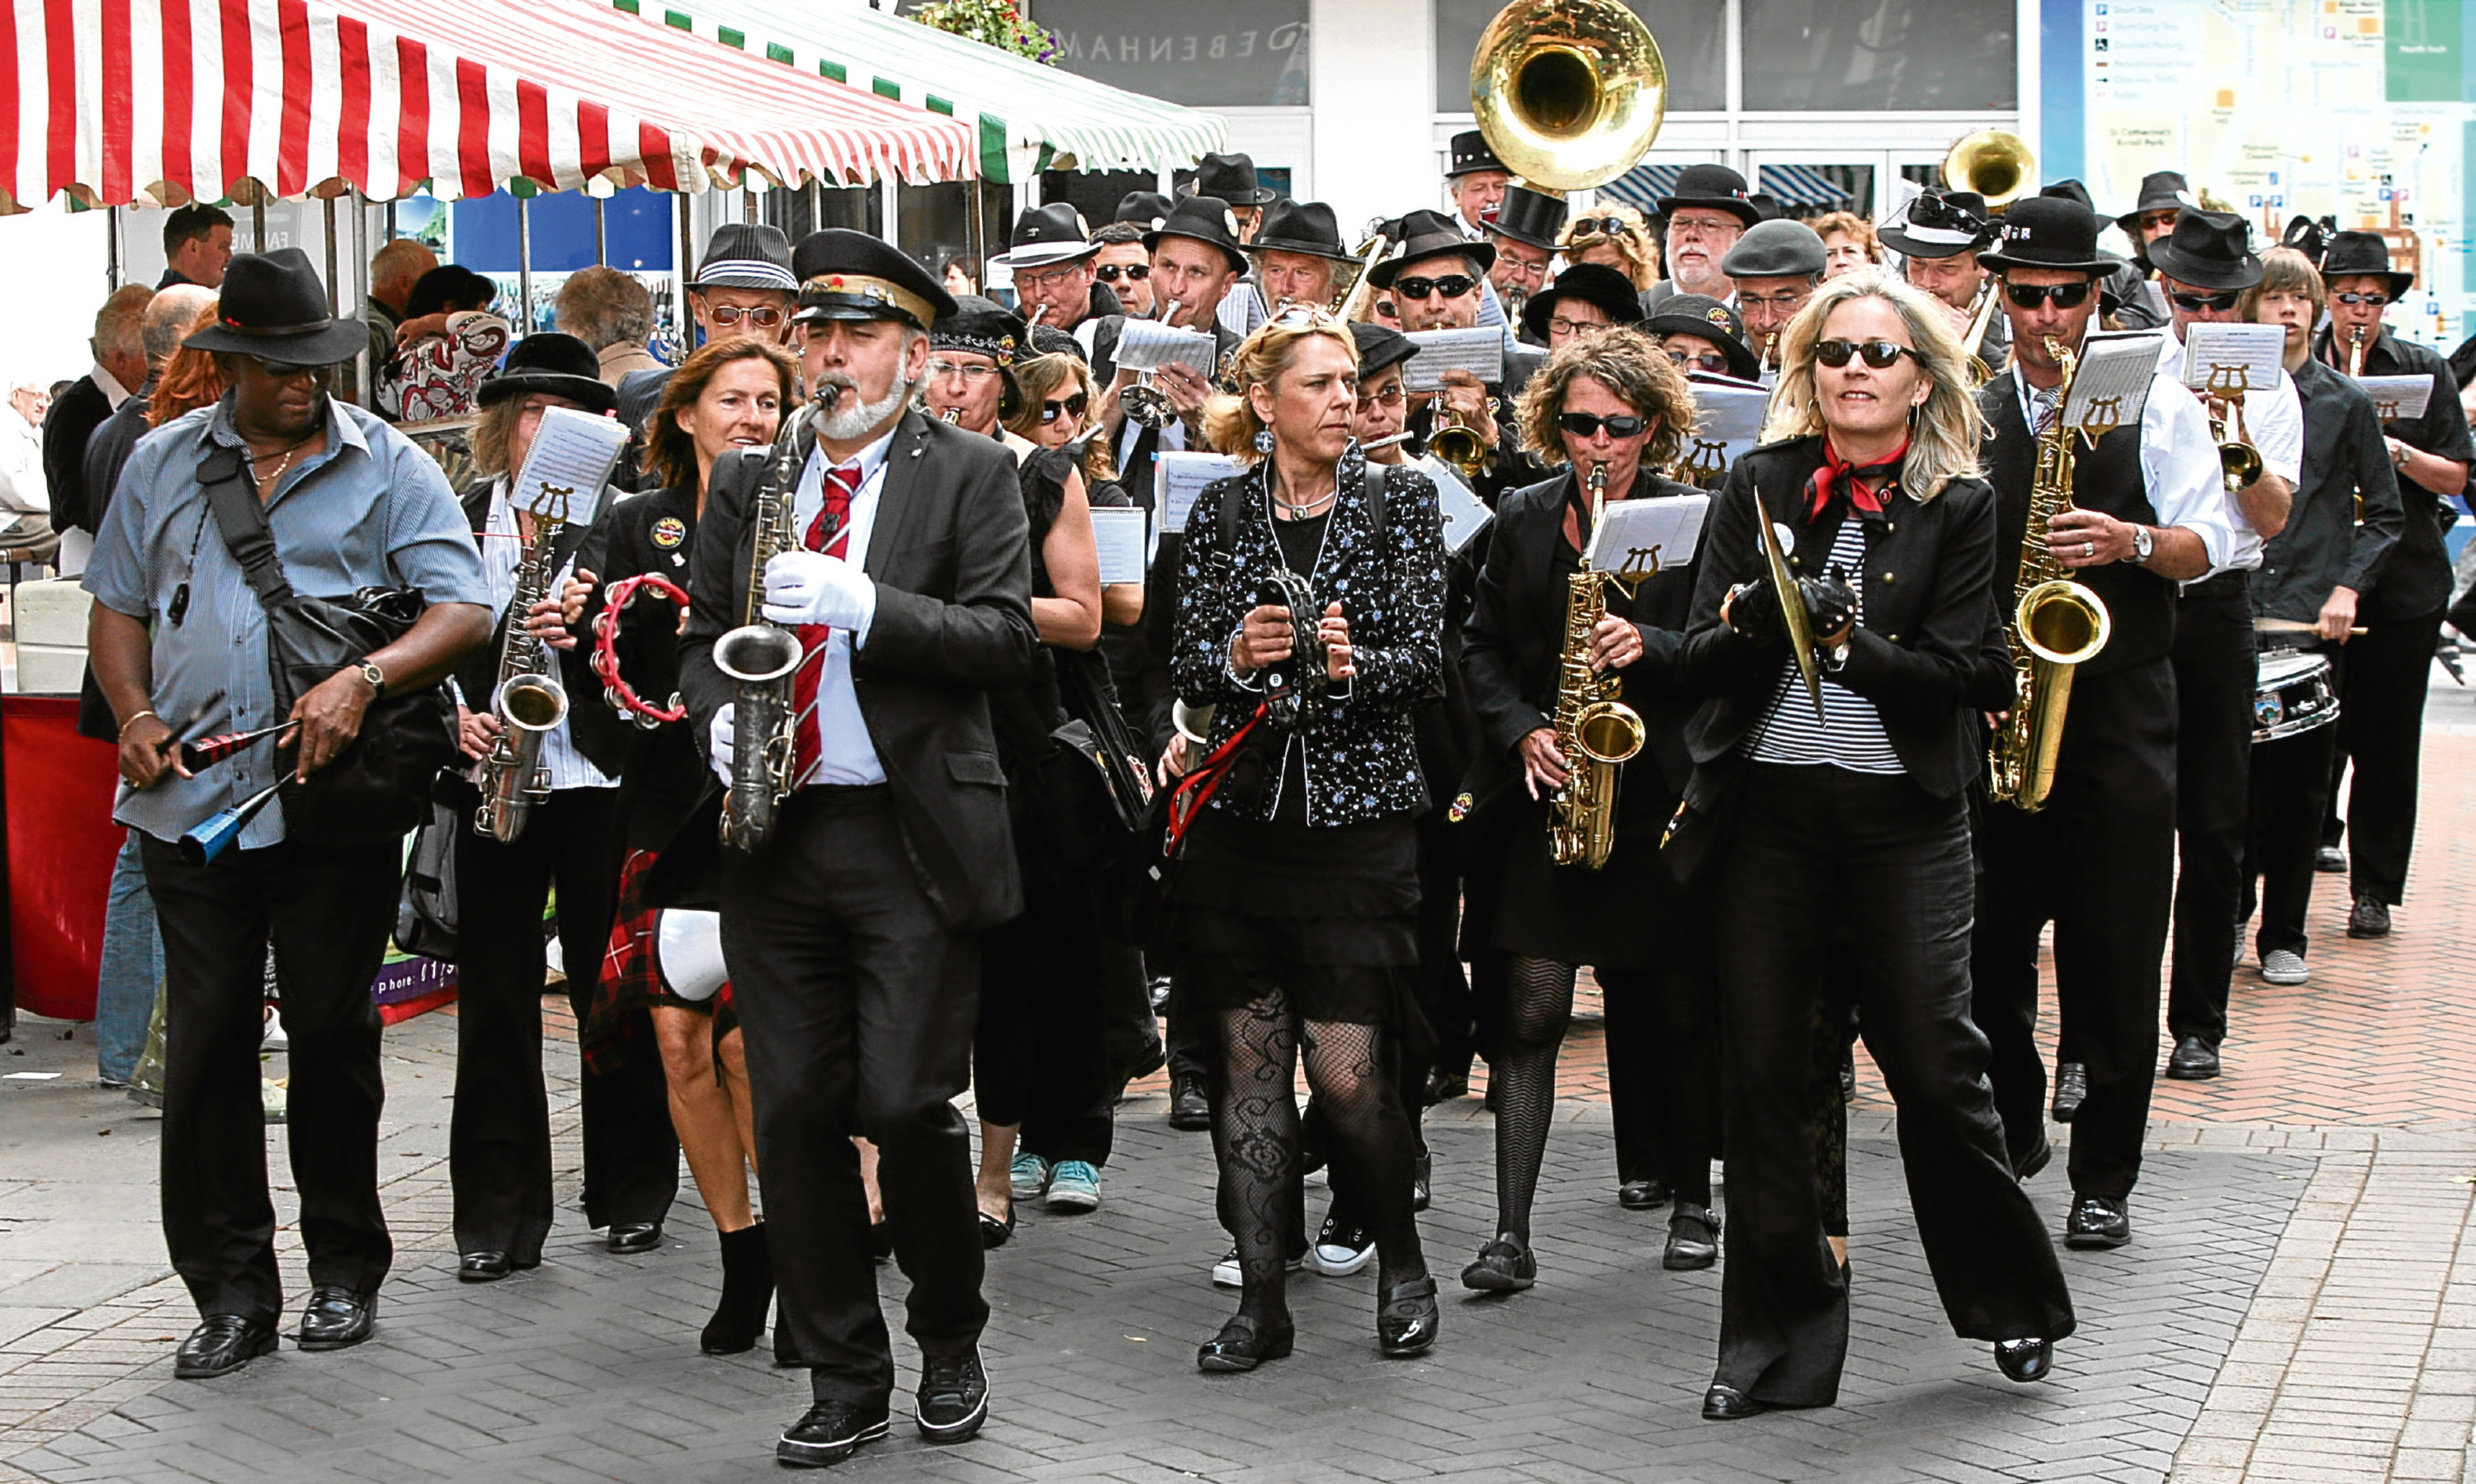 The March Mellows Street Band from Aschaffenburg, during an earlier visit to Perth.